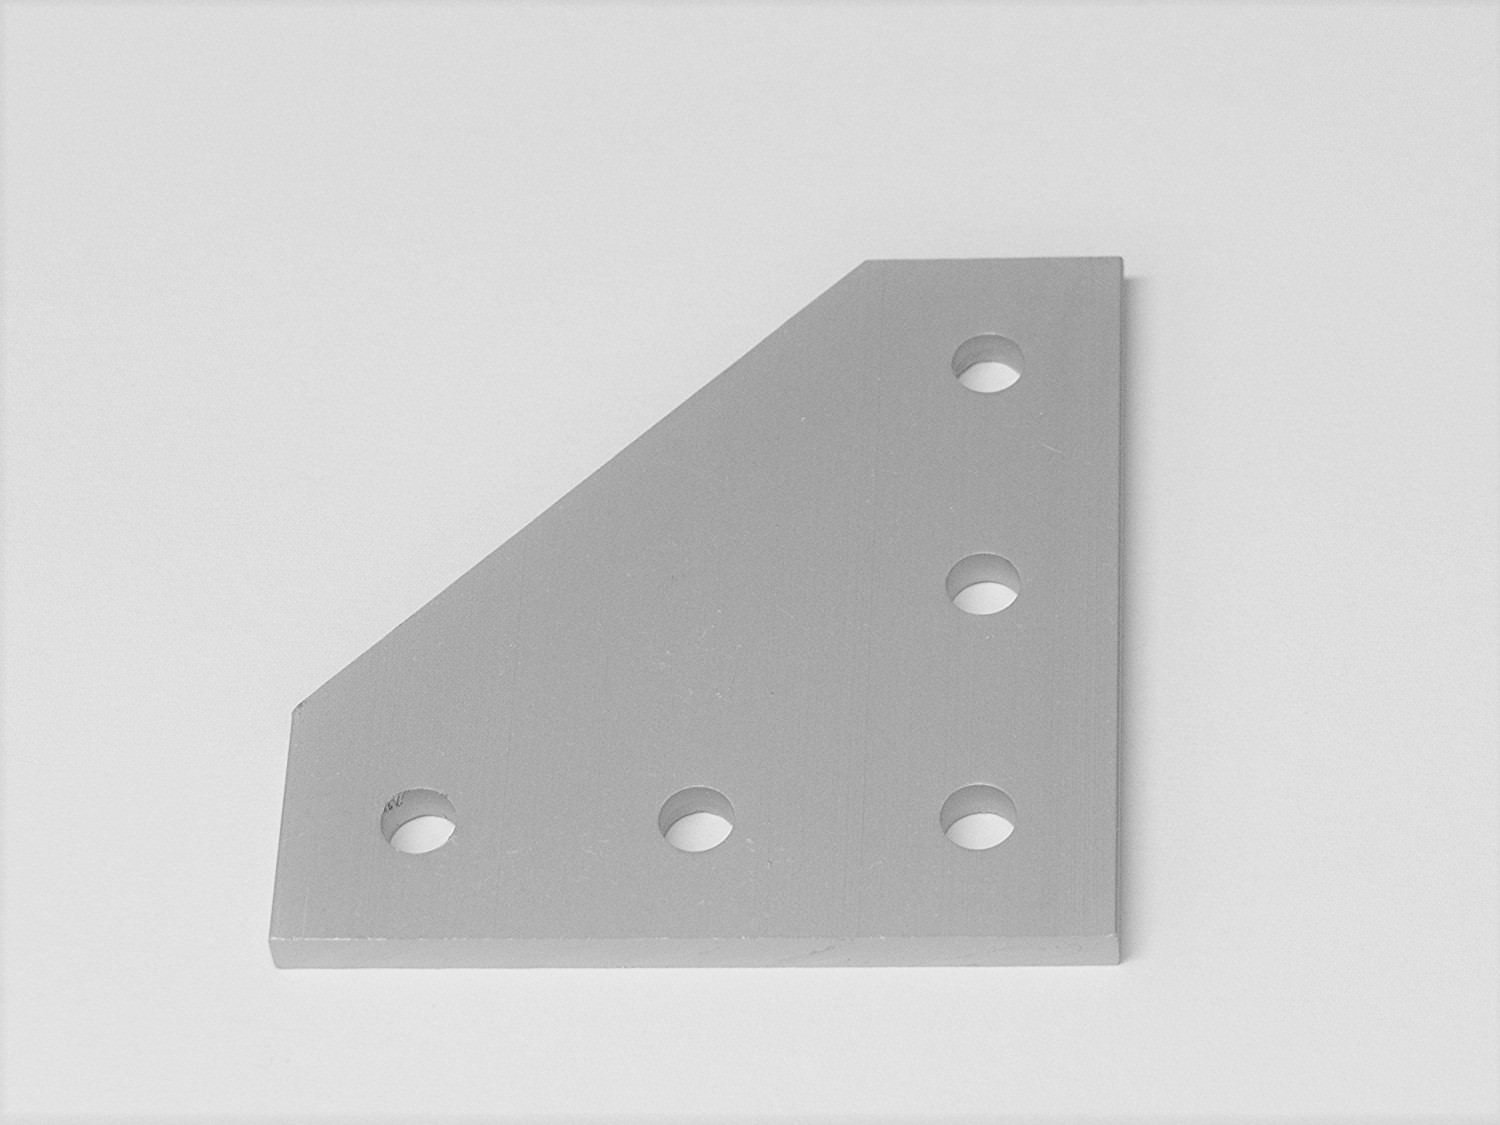 5-Hole 90 Degree Joining Plate (12 Pack), Aluminum, Corner, Angle, Bracket, Joint for 2020, 20 Series T Slot Extrusion Assembly